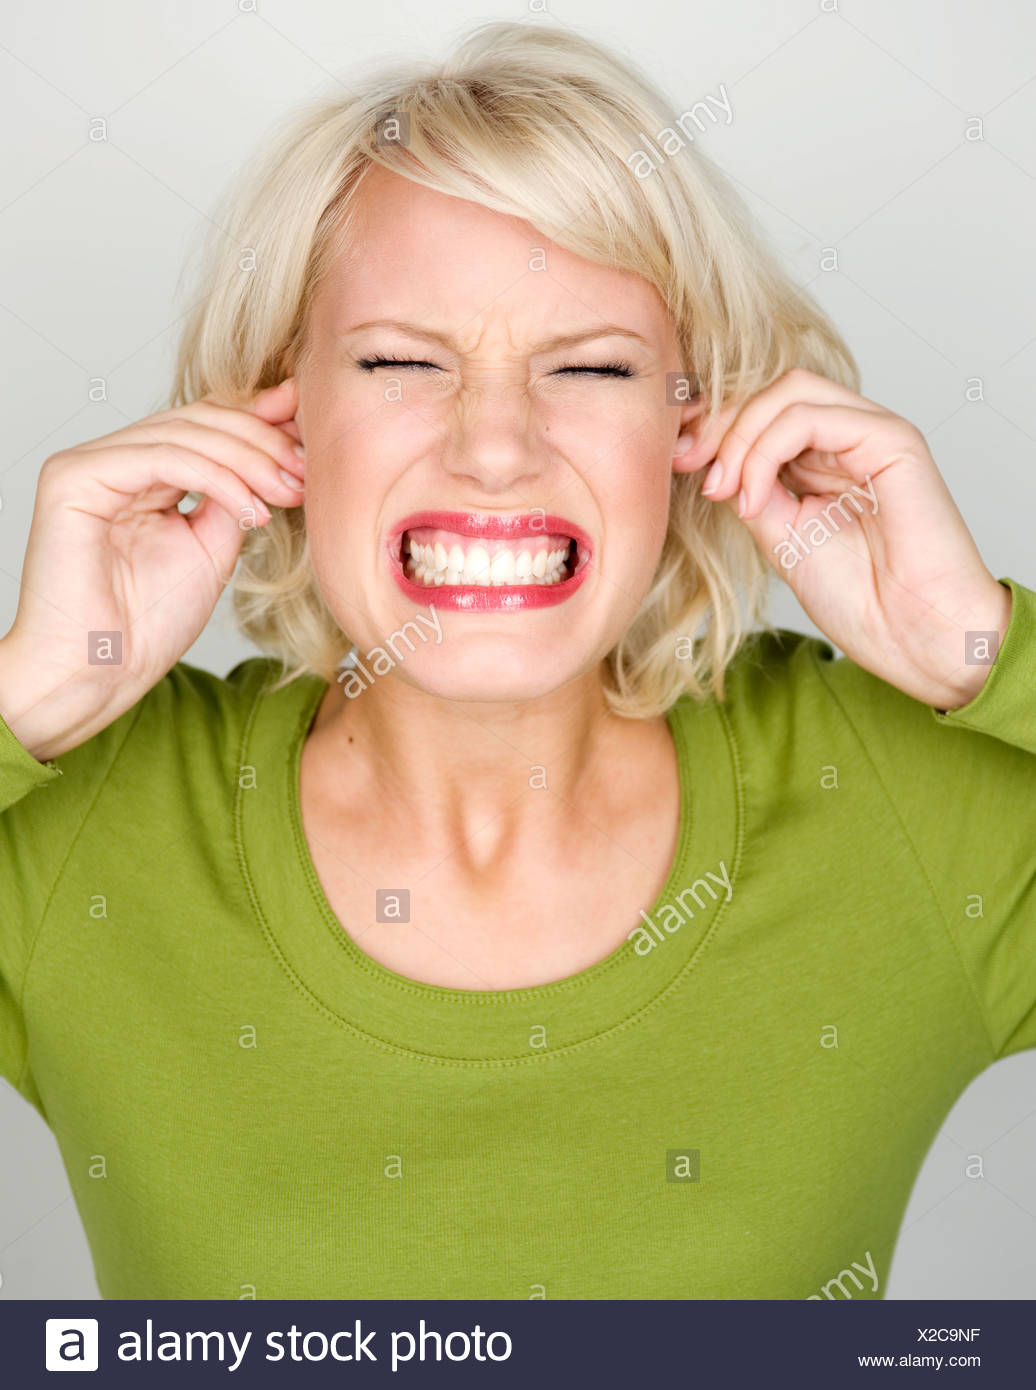 Female with her fingers in her ears and face screwed up - Stock Image